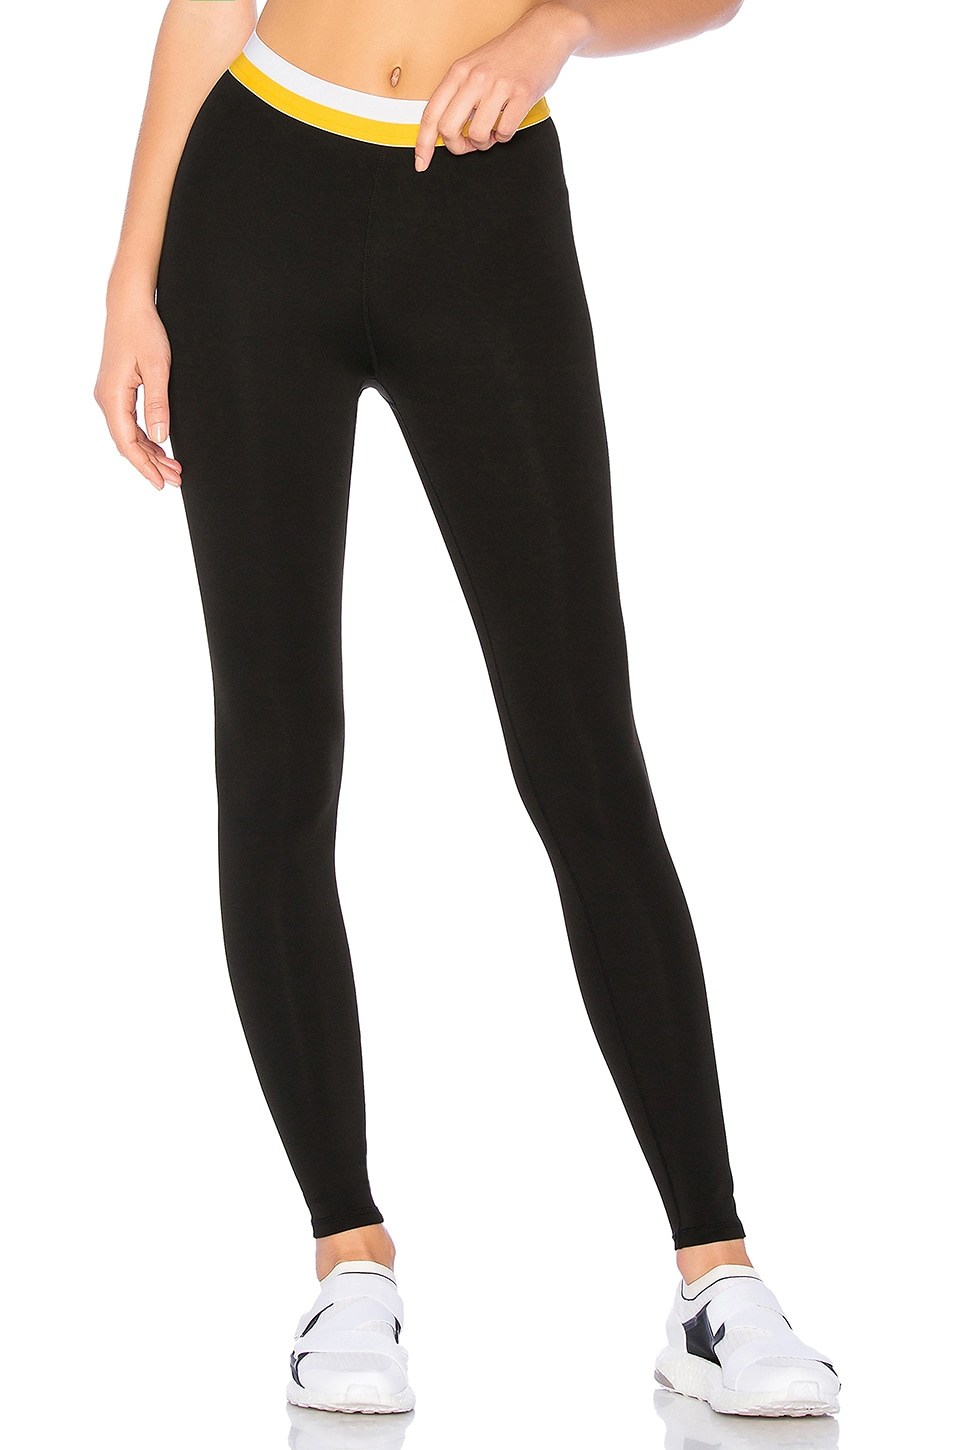 lovewave Hailey Pant in Black